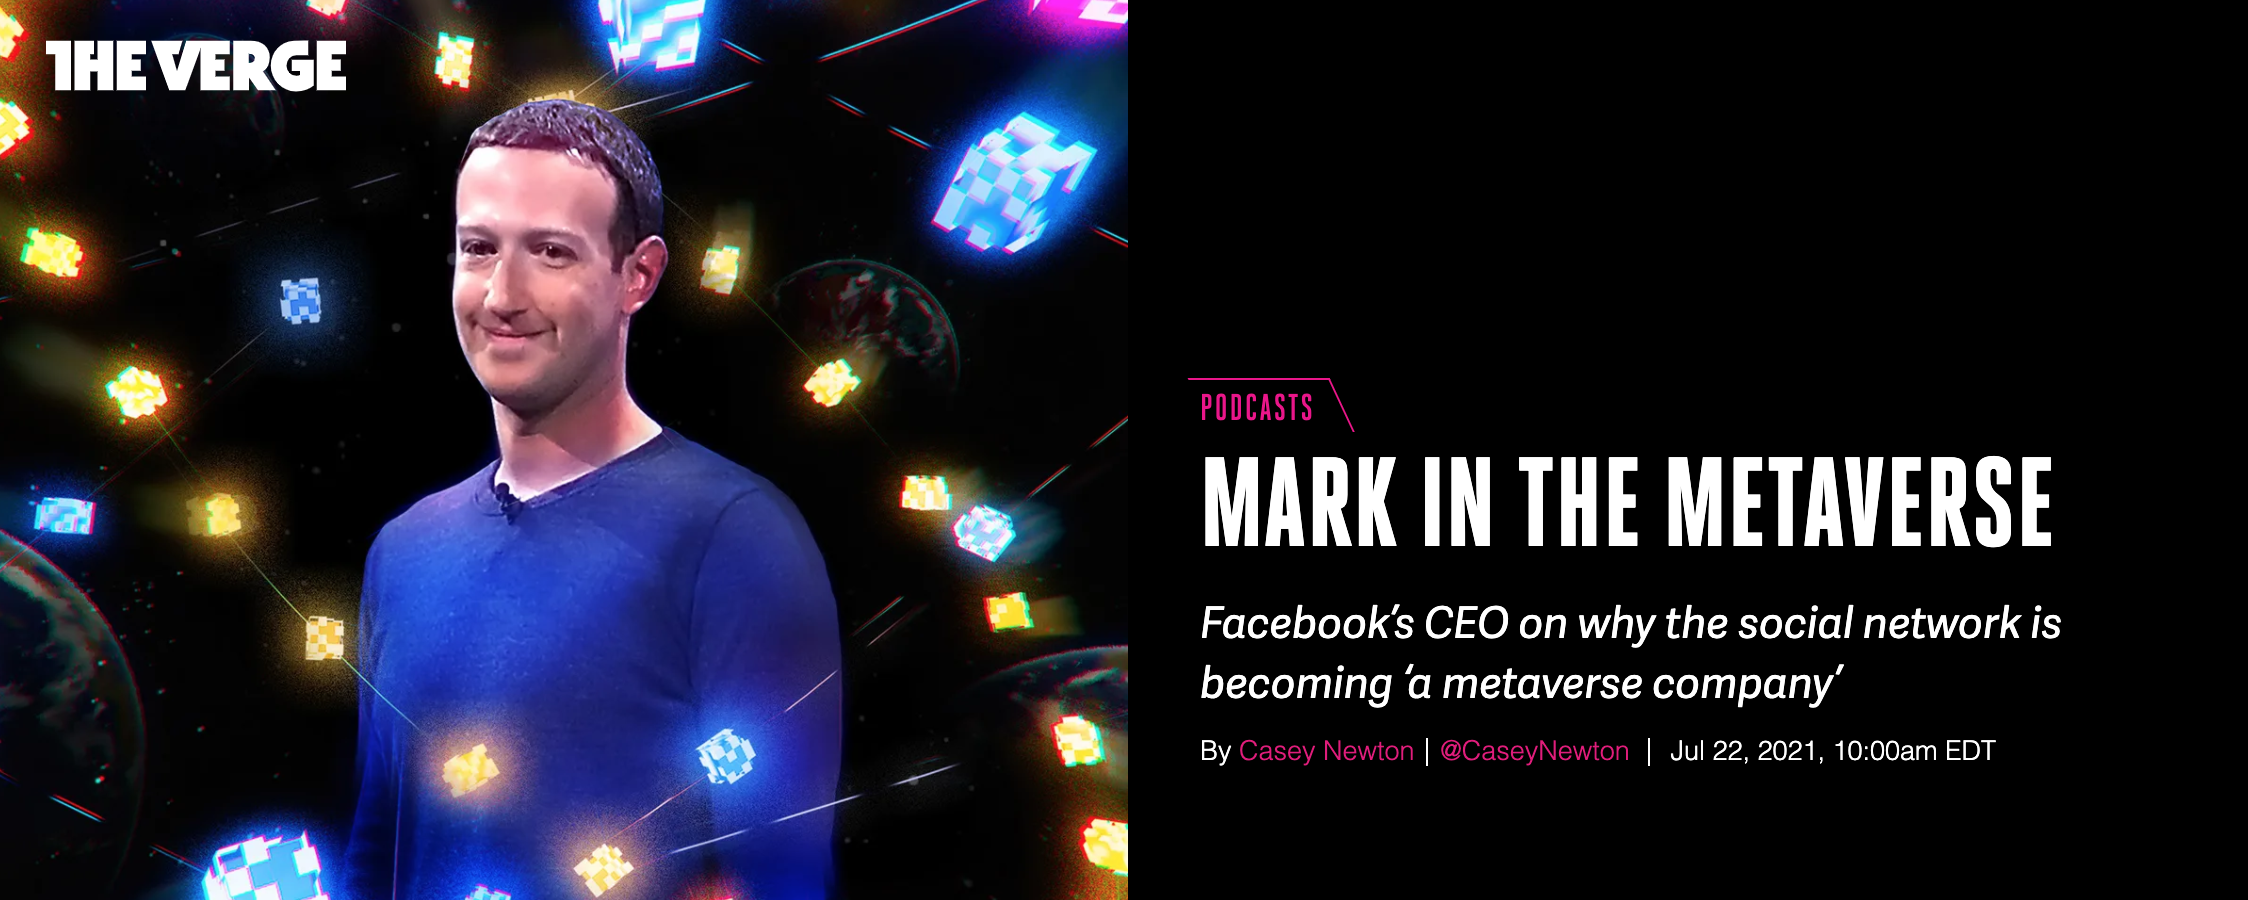 Mark in the Metaverse